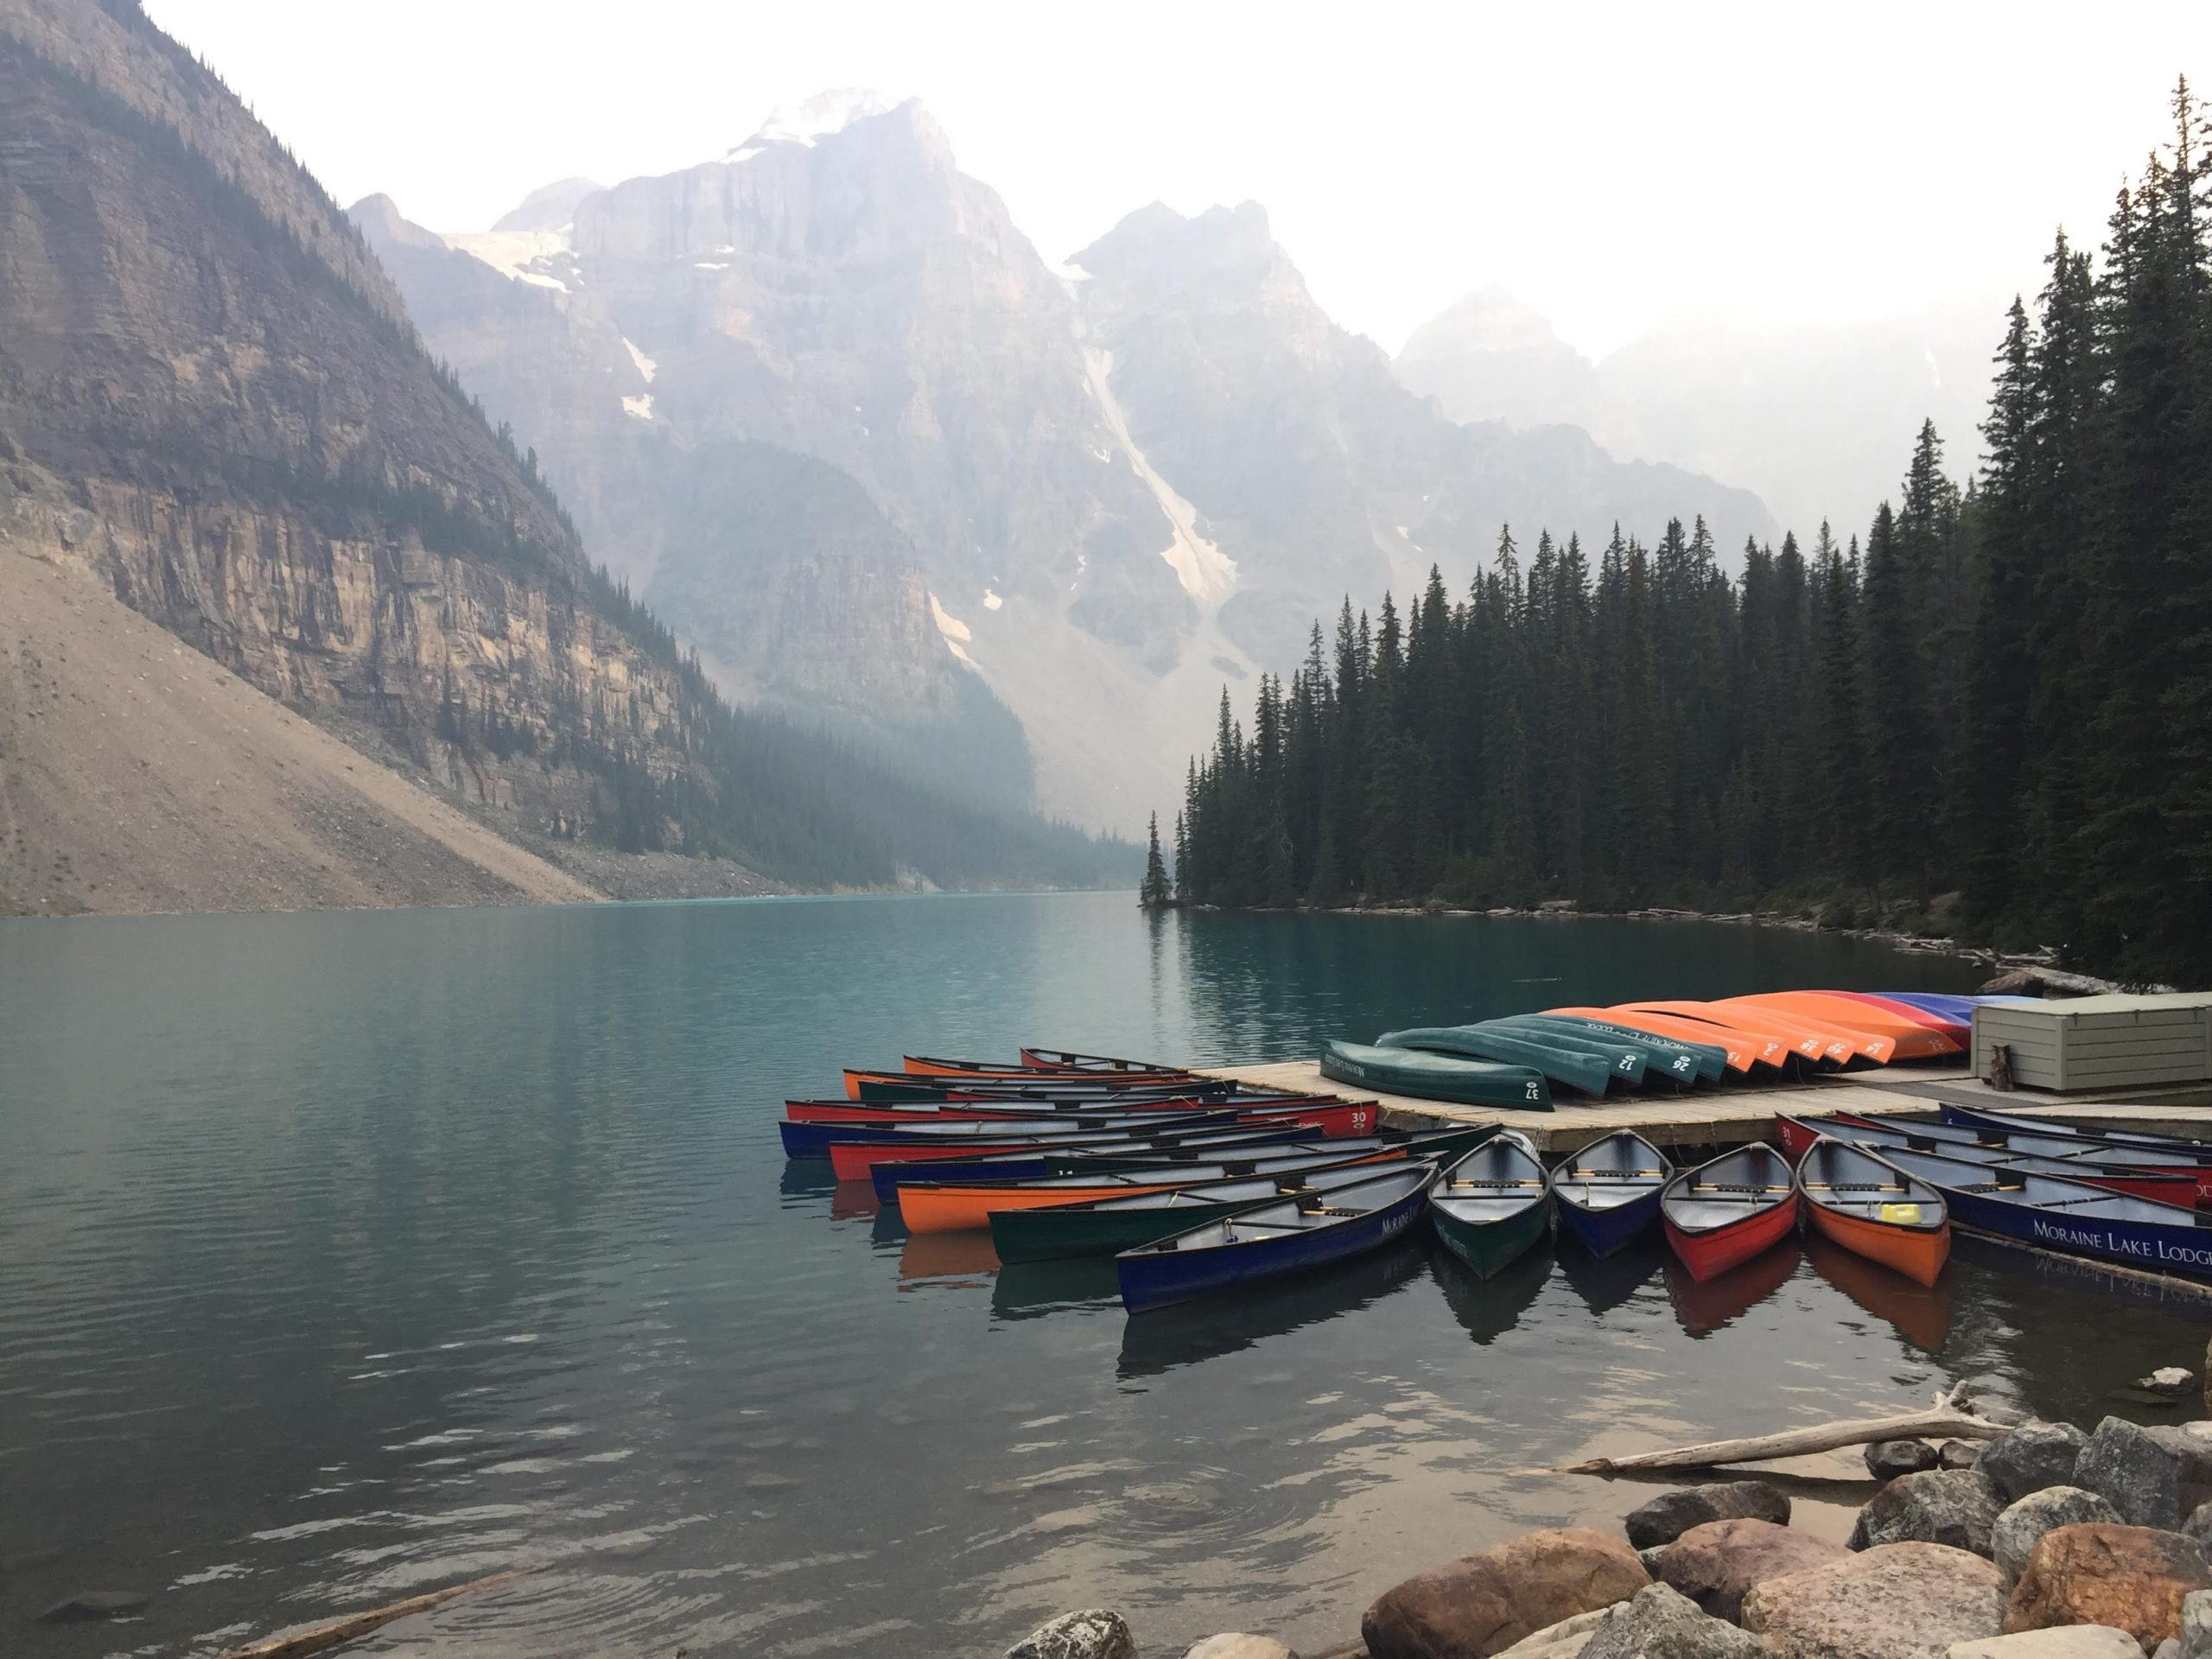 About 30 colorful canoes rest at a mountain lake dock with a gorgeous scene behind.